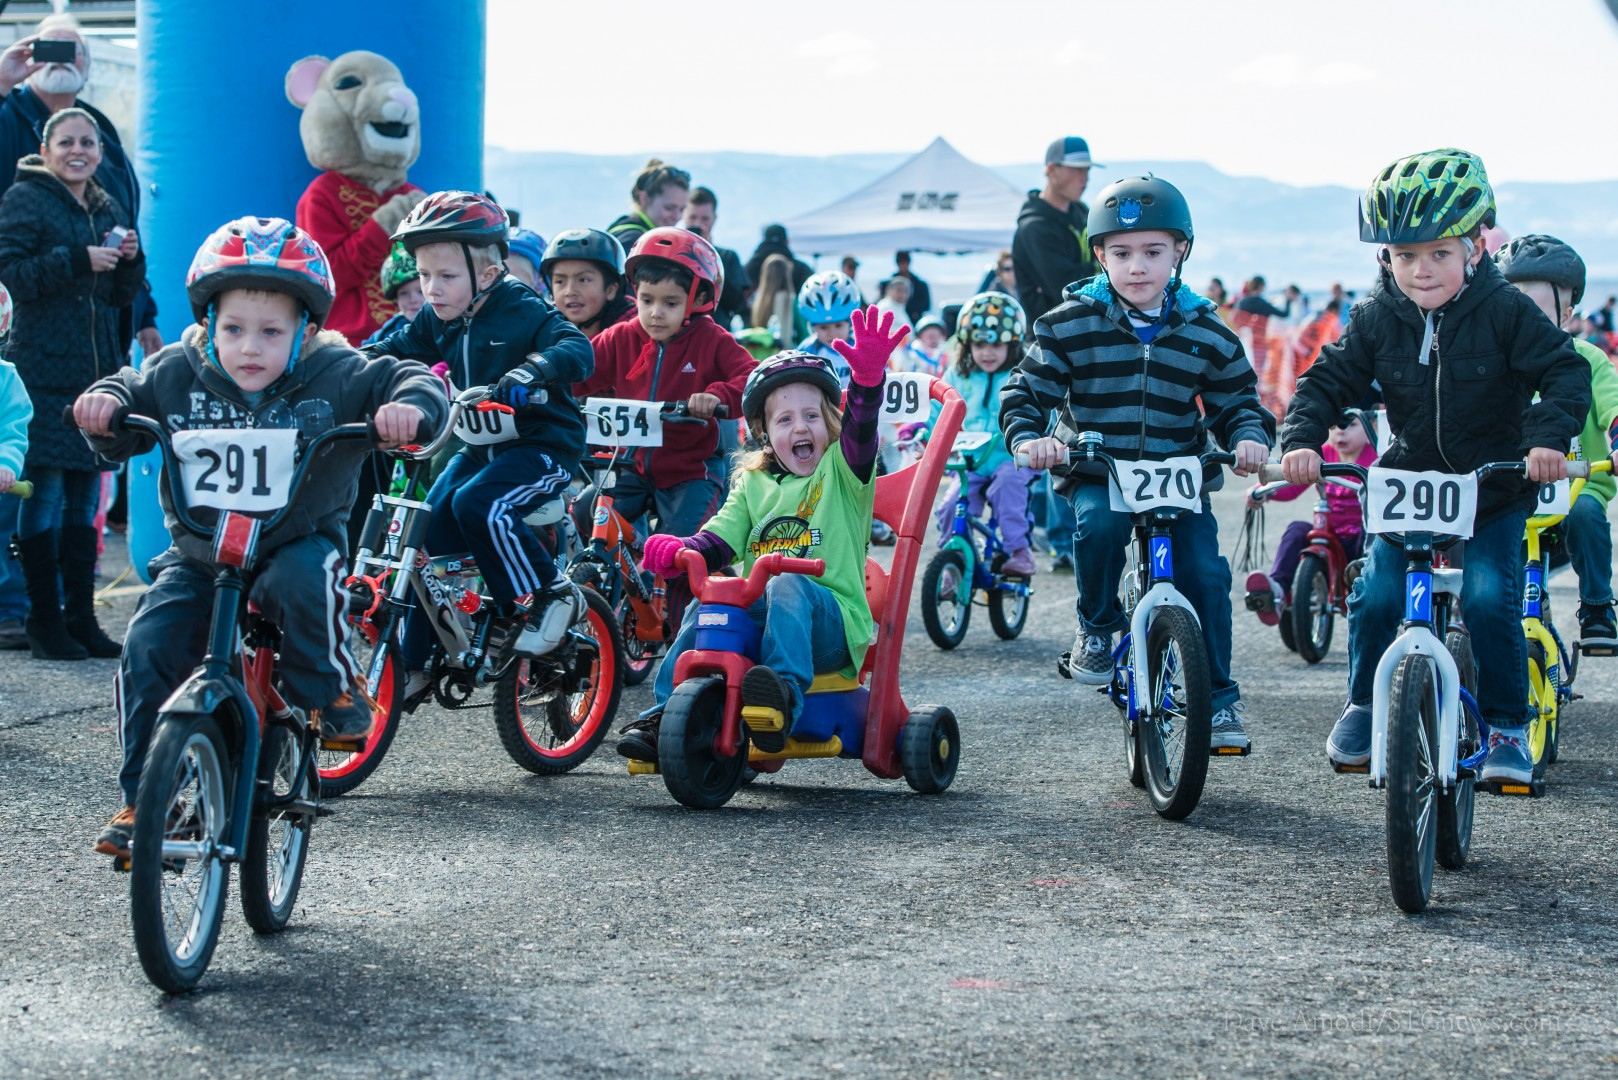 Tuff Kids Criterion Race, St. George, Utah, Feb. 1, 2014 | Photo by Dave Amodt, St. George News